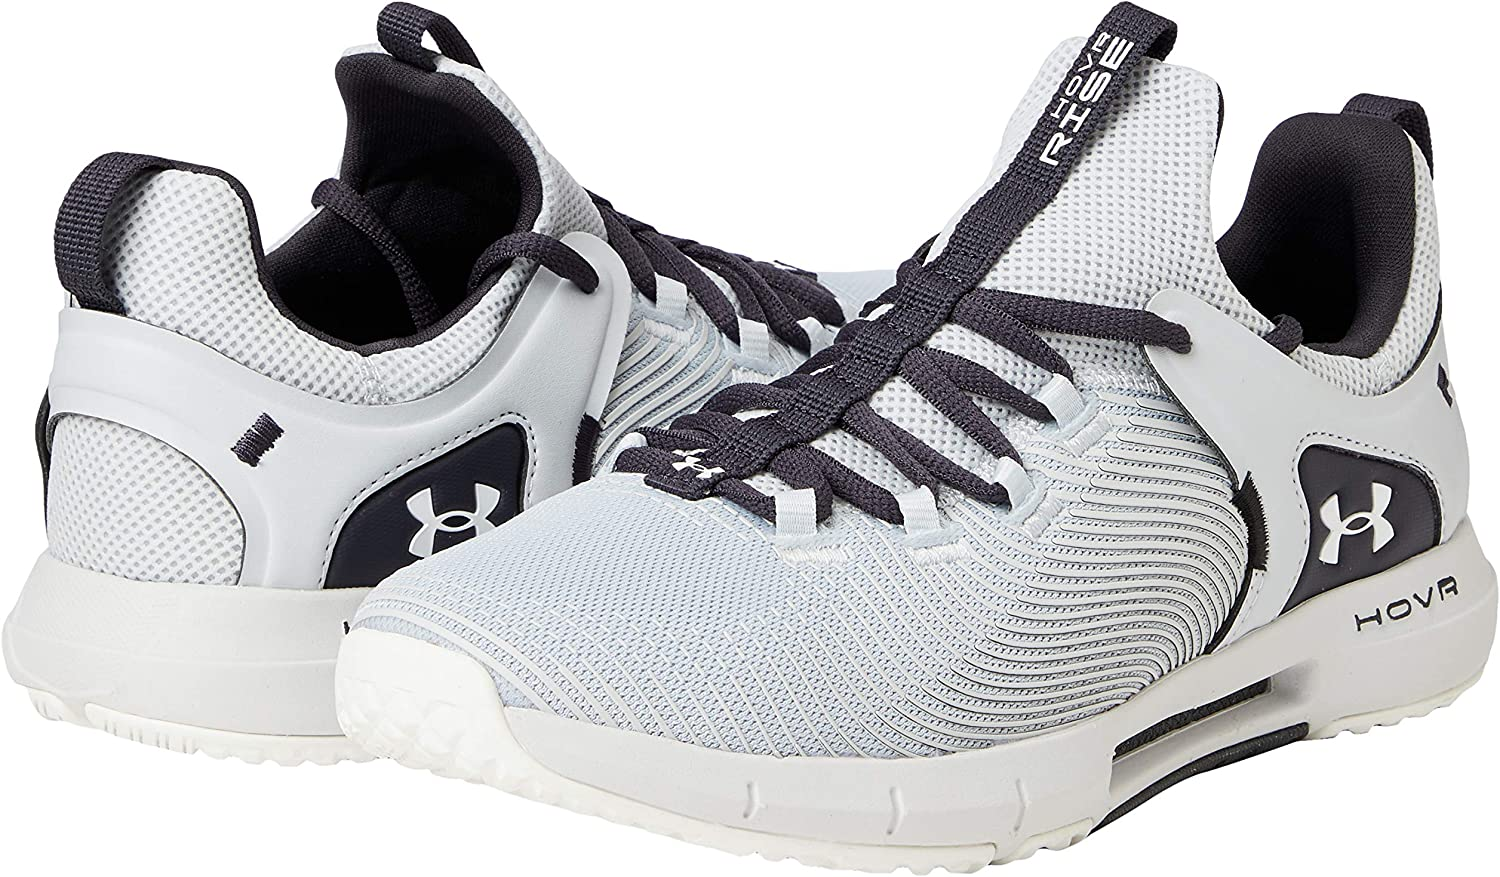 Under Armour Mens HOVR Rise 2 Cross Trainer